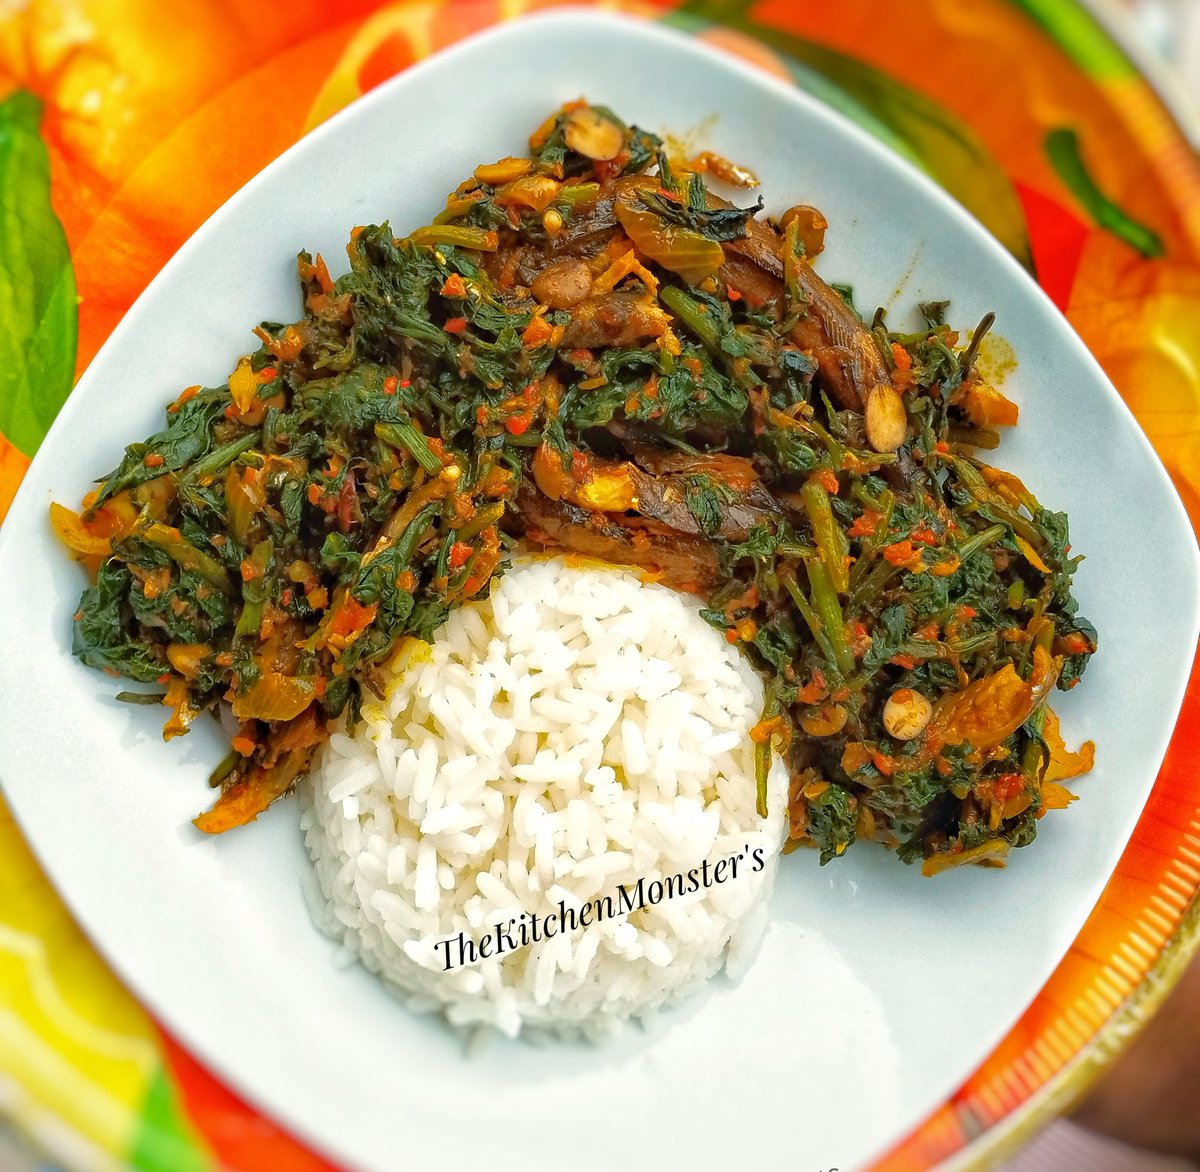 Rice and Efo Riro with Eja Kika.  This is my new favorite food, Chicken and Chiexotic can now go on leave.  #TheKitchenMonsters #Breakfast pic.twitter.com/drDCHlbbzd